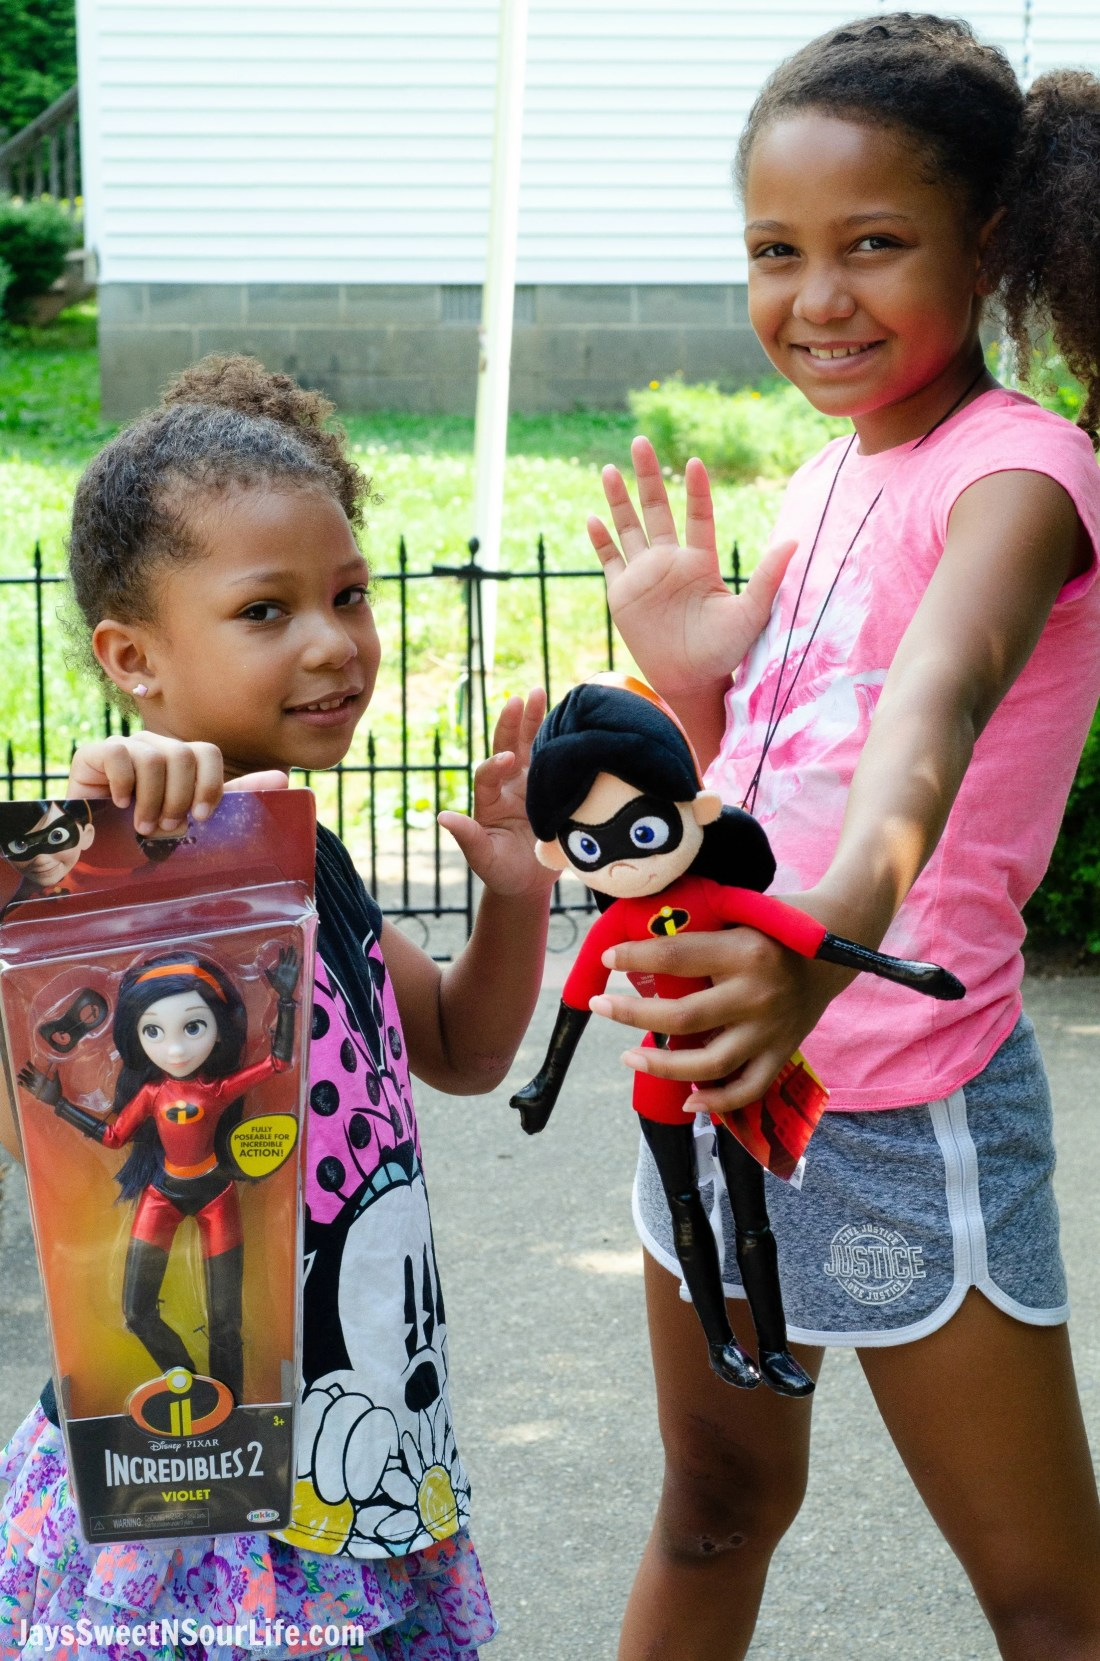 African American Girls Incredibles 2 Violet Action Figure and Plush Doll. New Disney Pixars Incredibles 2 Toys + More | Incredibles 2 Gift Guide